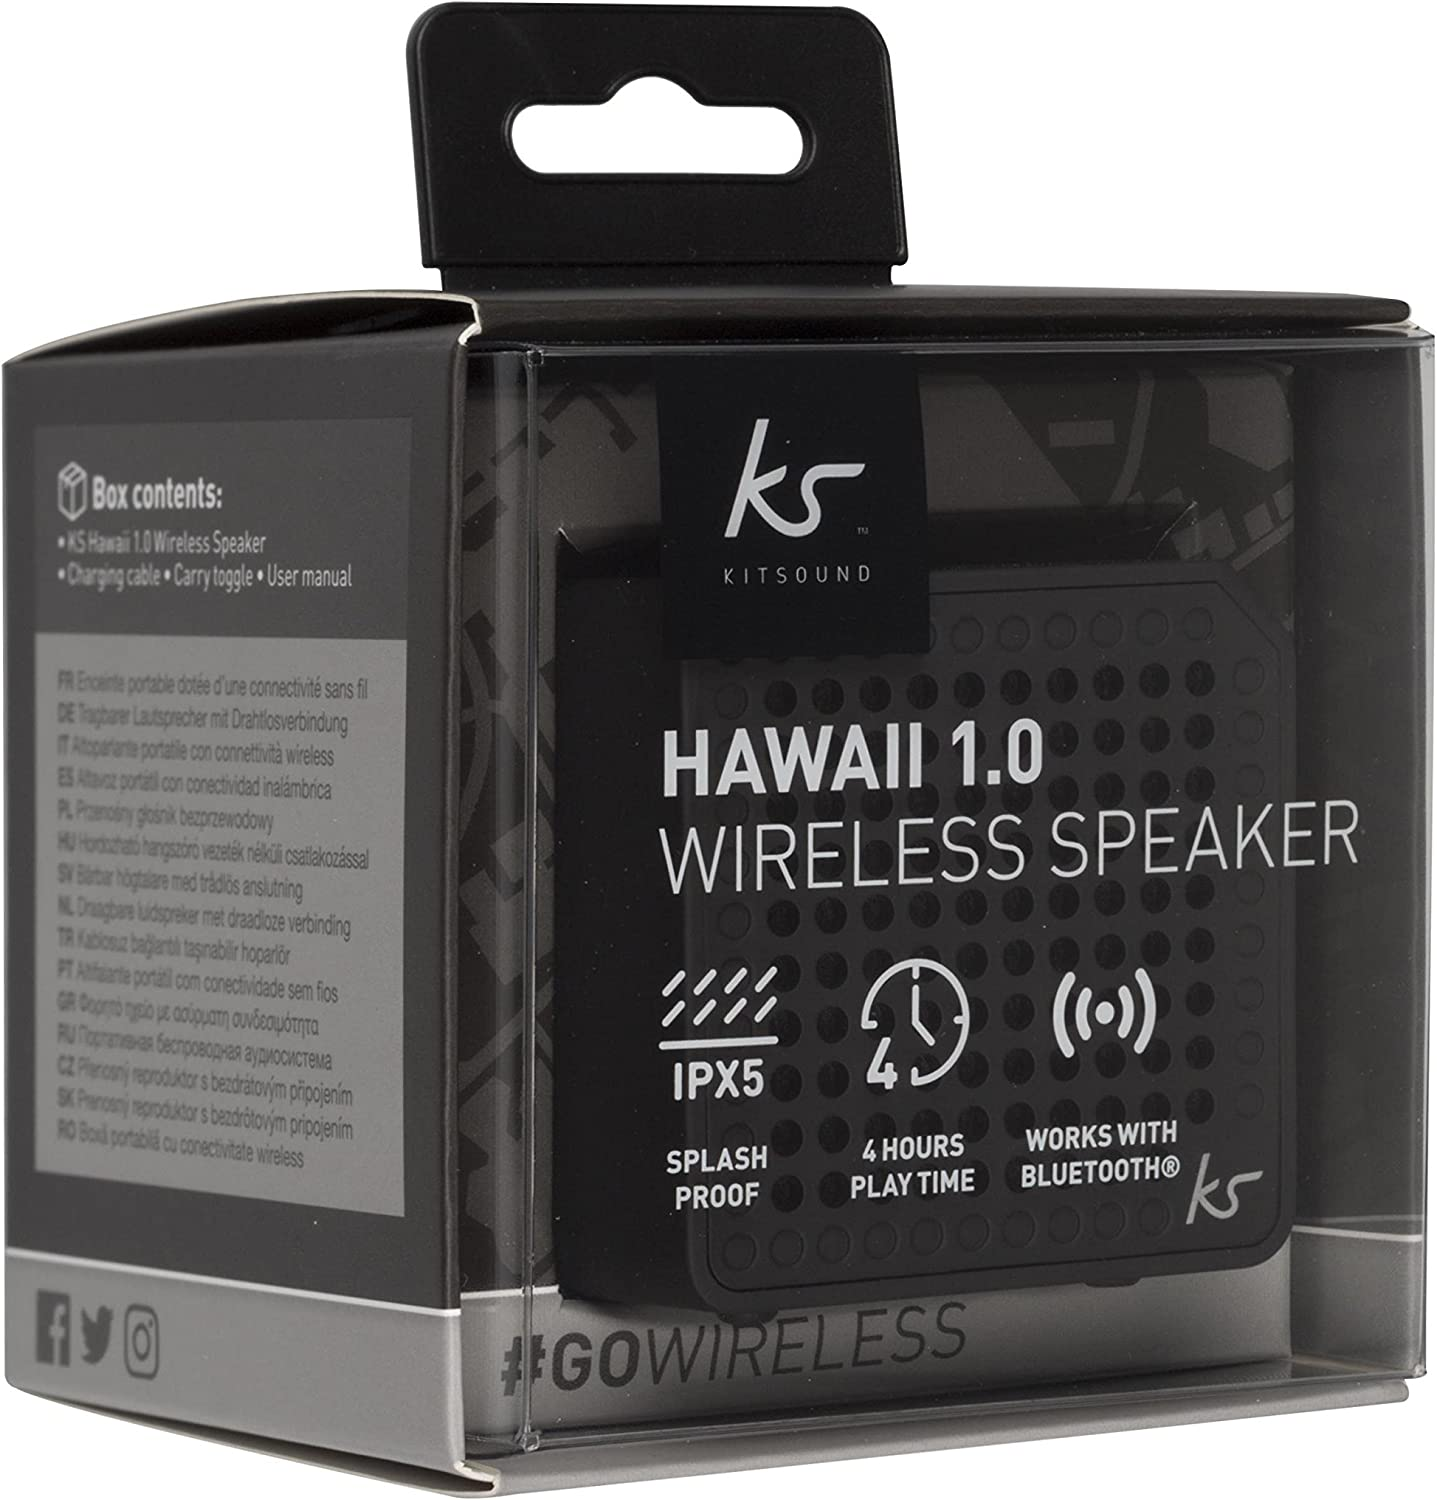 kitsound hawaii 1.0 wireless speaker